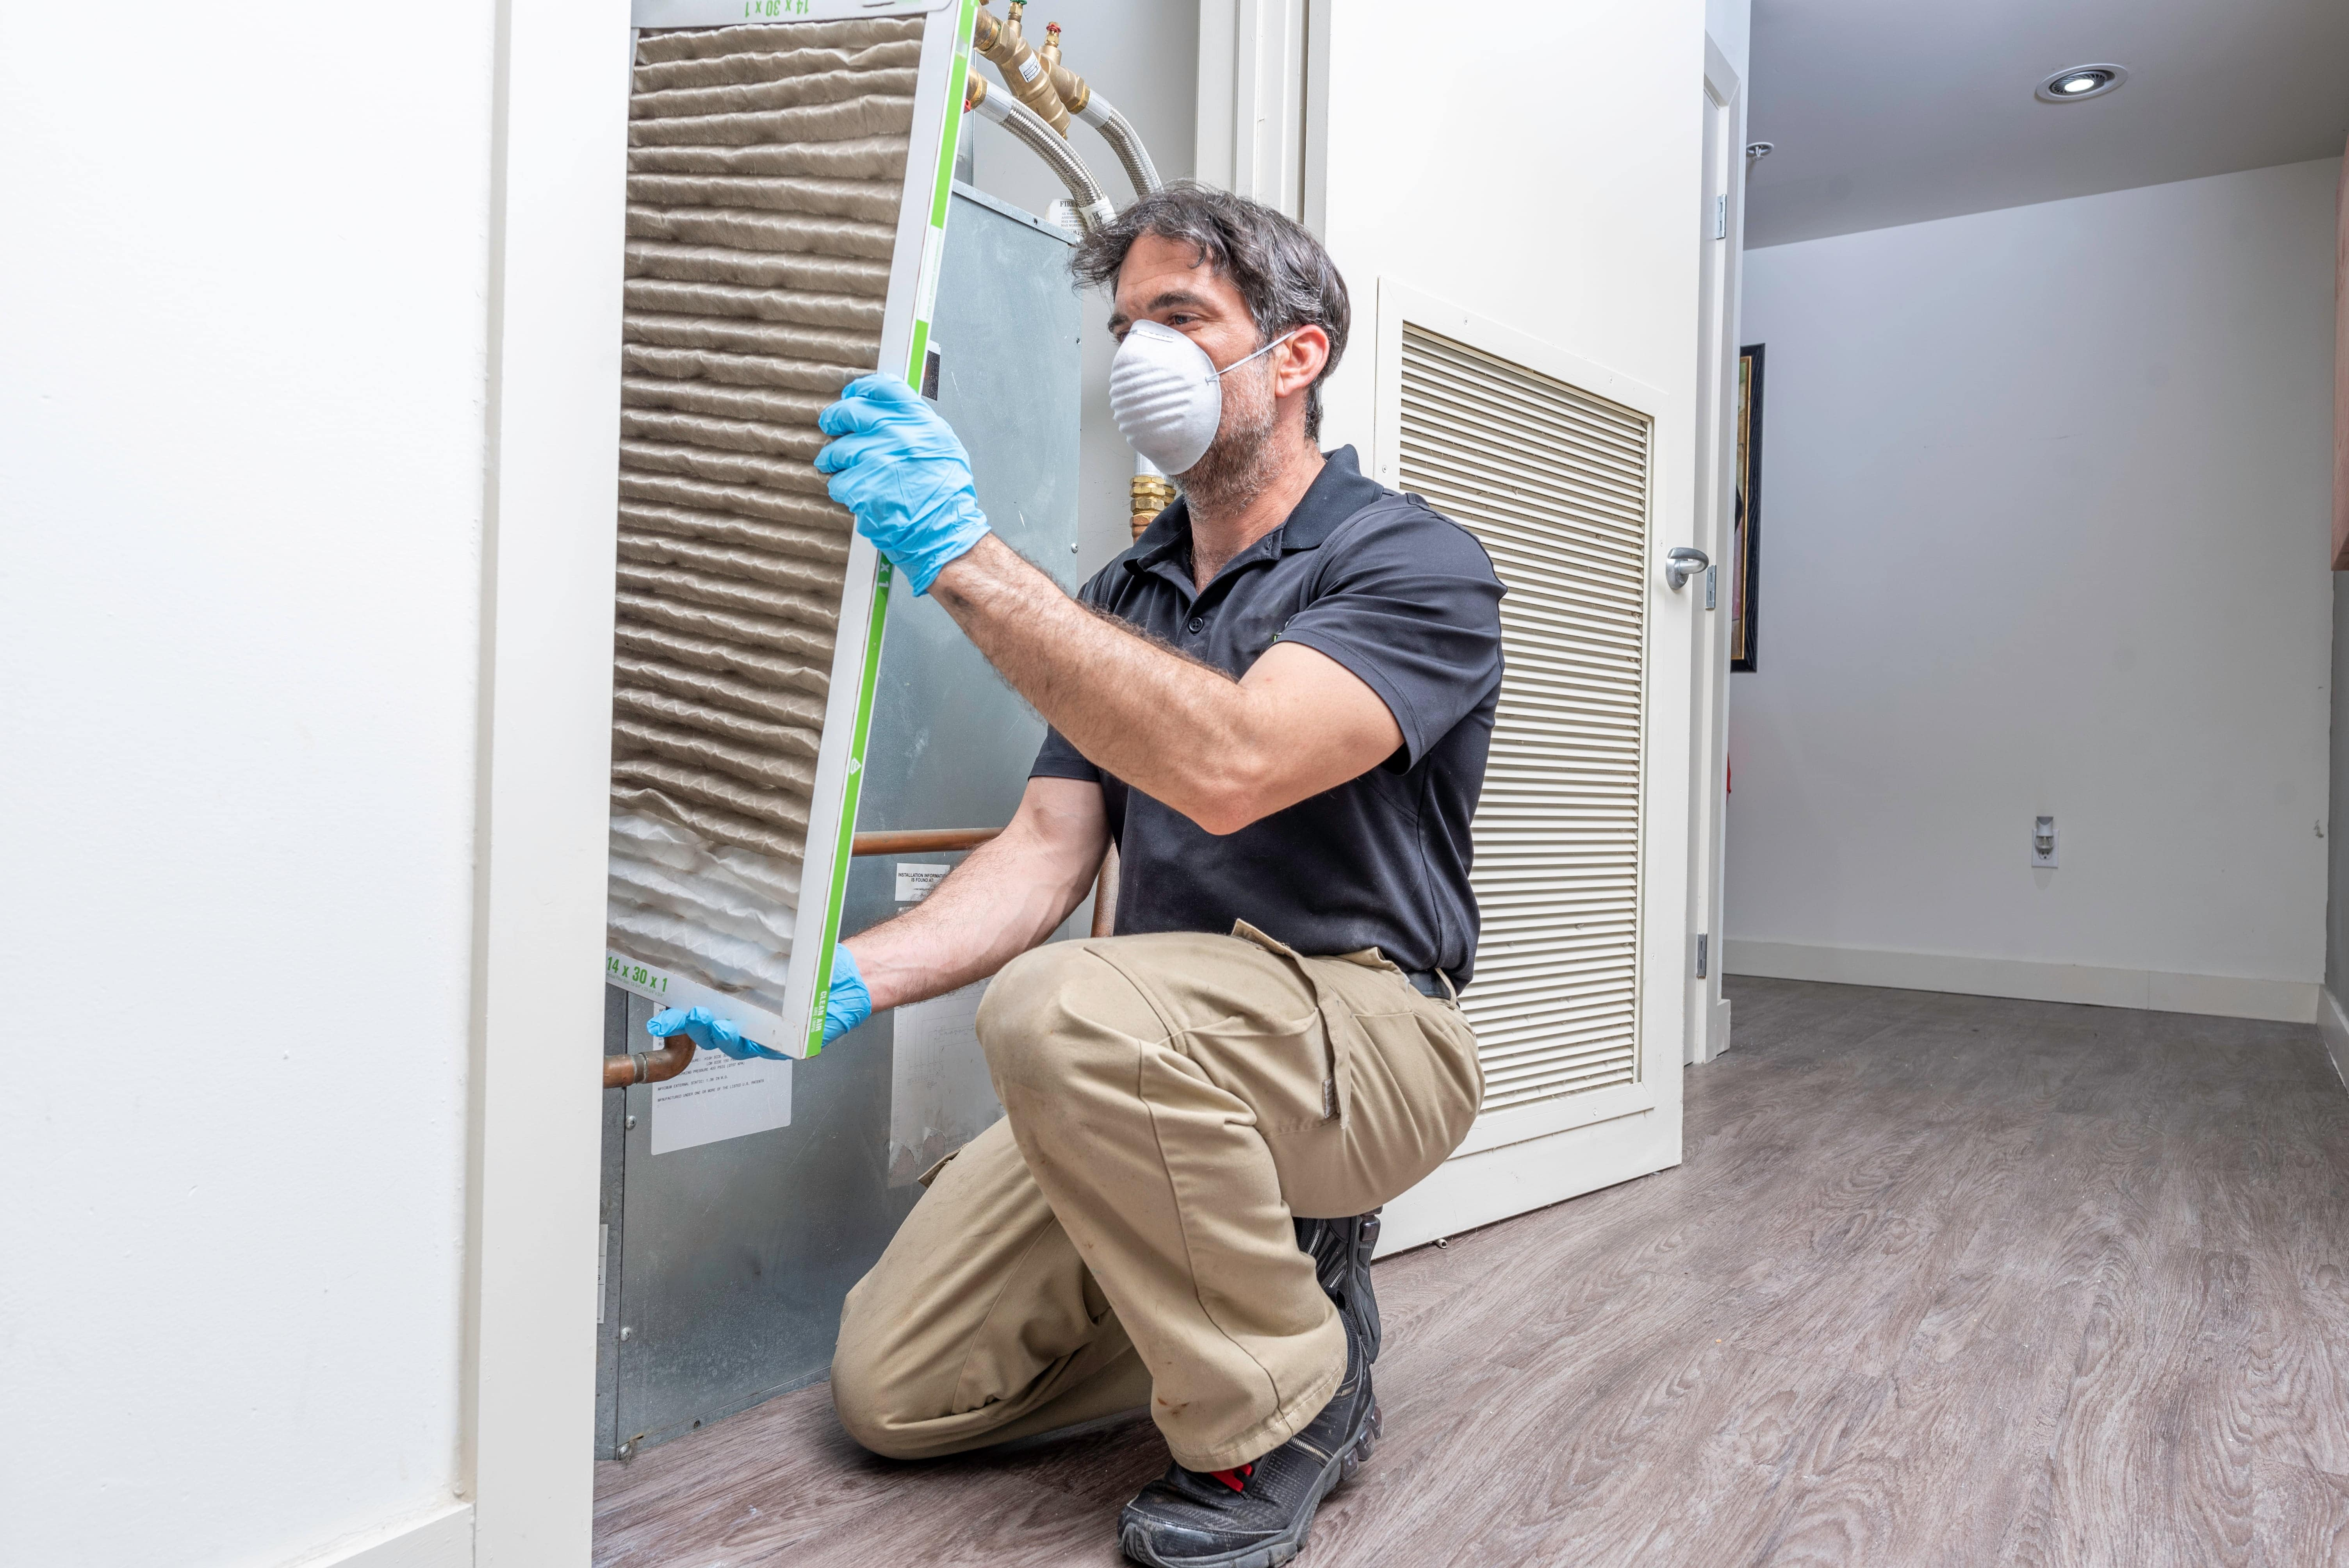 technician in a dust mask examines dirty heat pump air filter